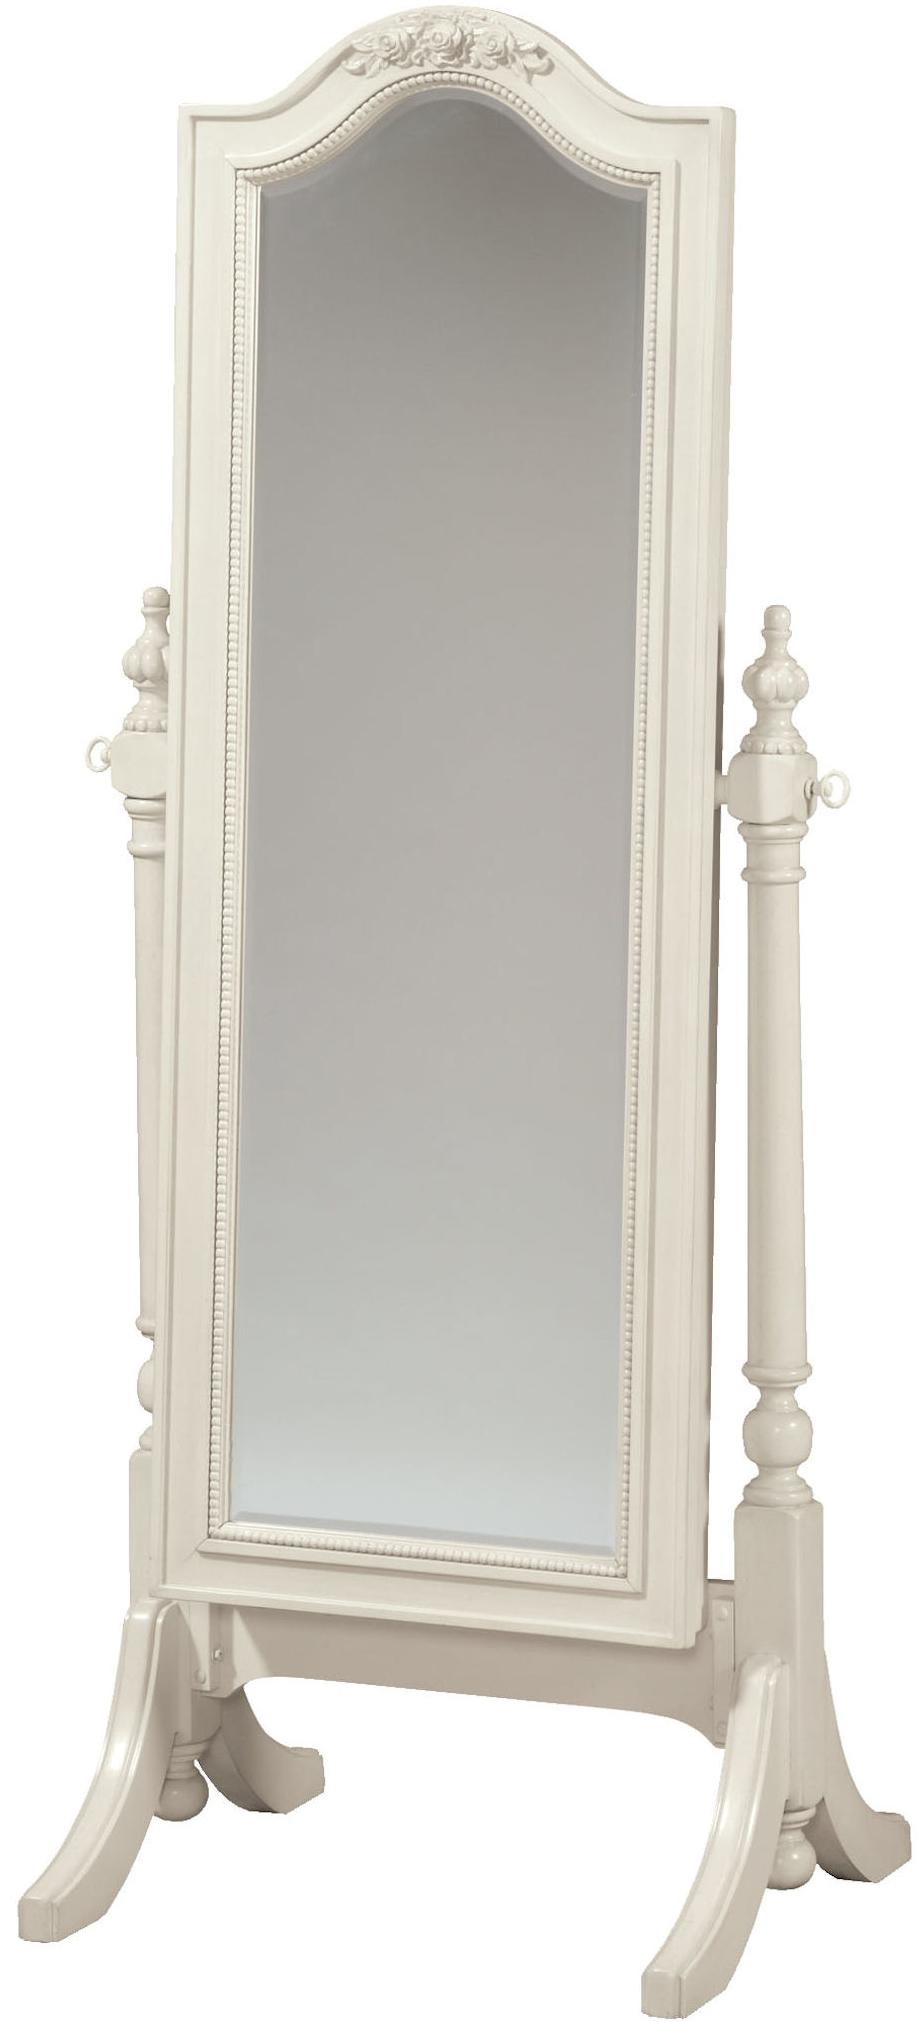 Morris Home Furnishings Greenville Greenville Mirror with Storage - Item Number: 136A034